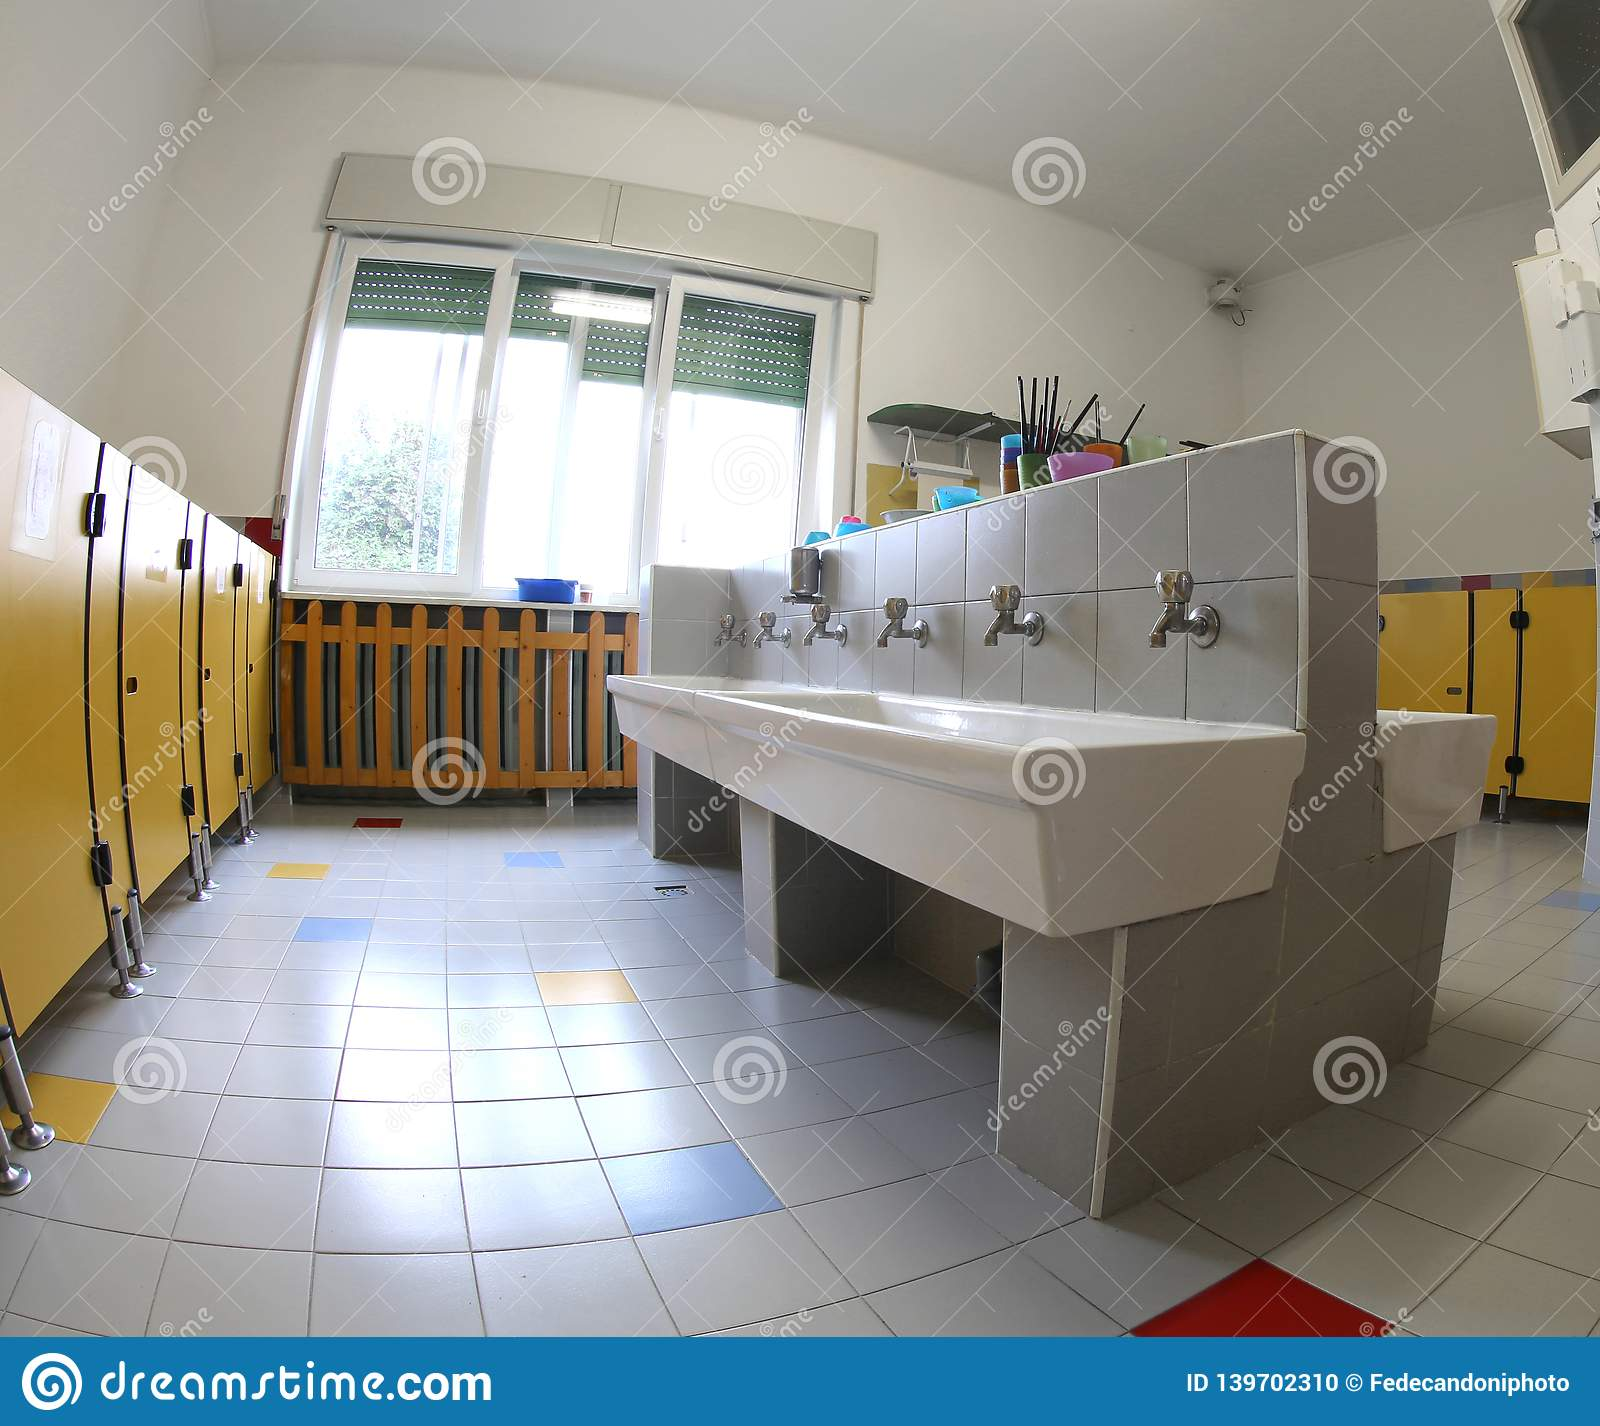 Interior of the school bathrooms with ceramic sinks and yellow d